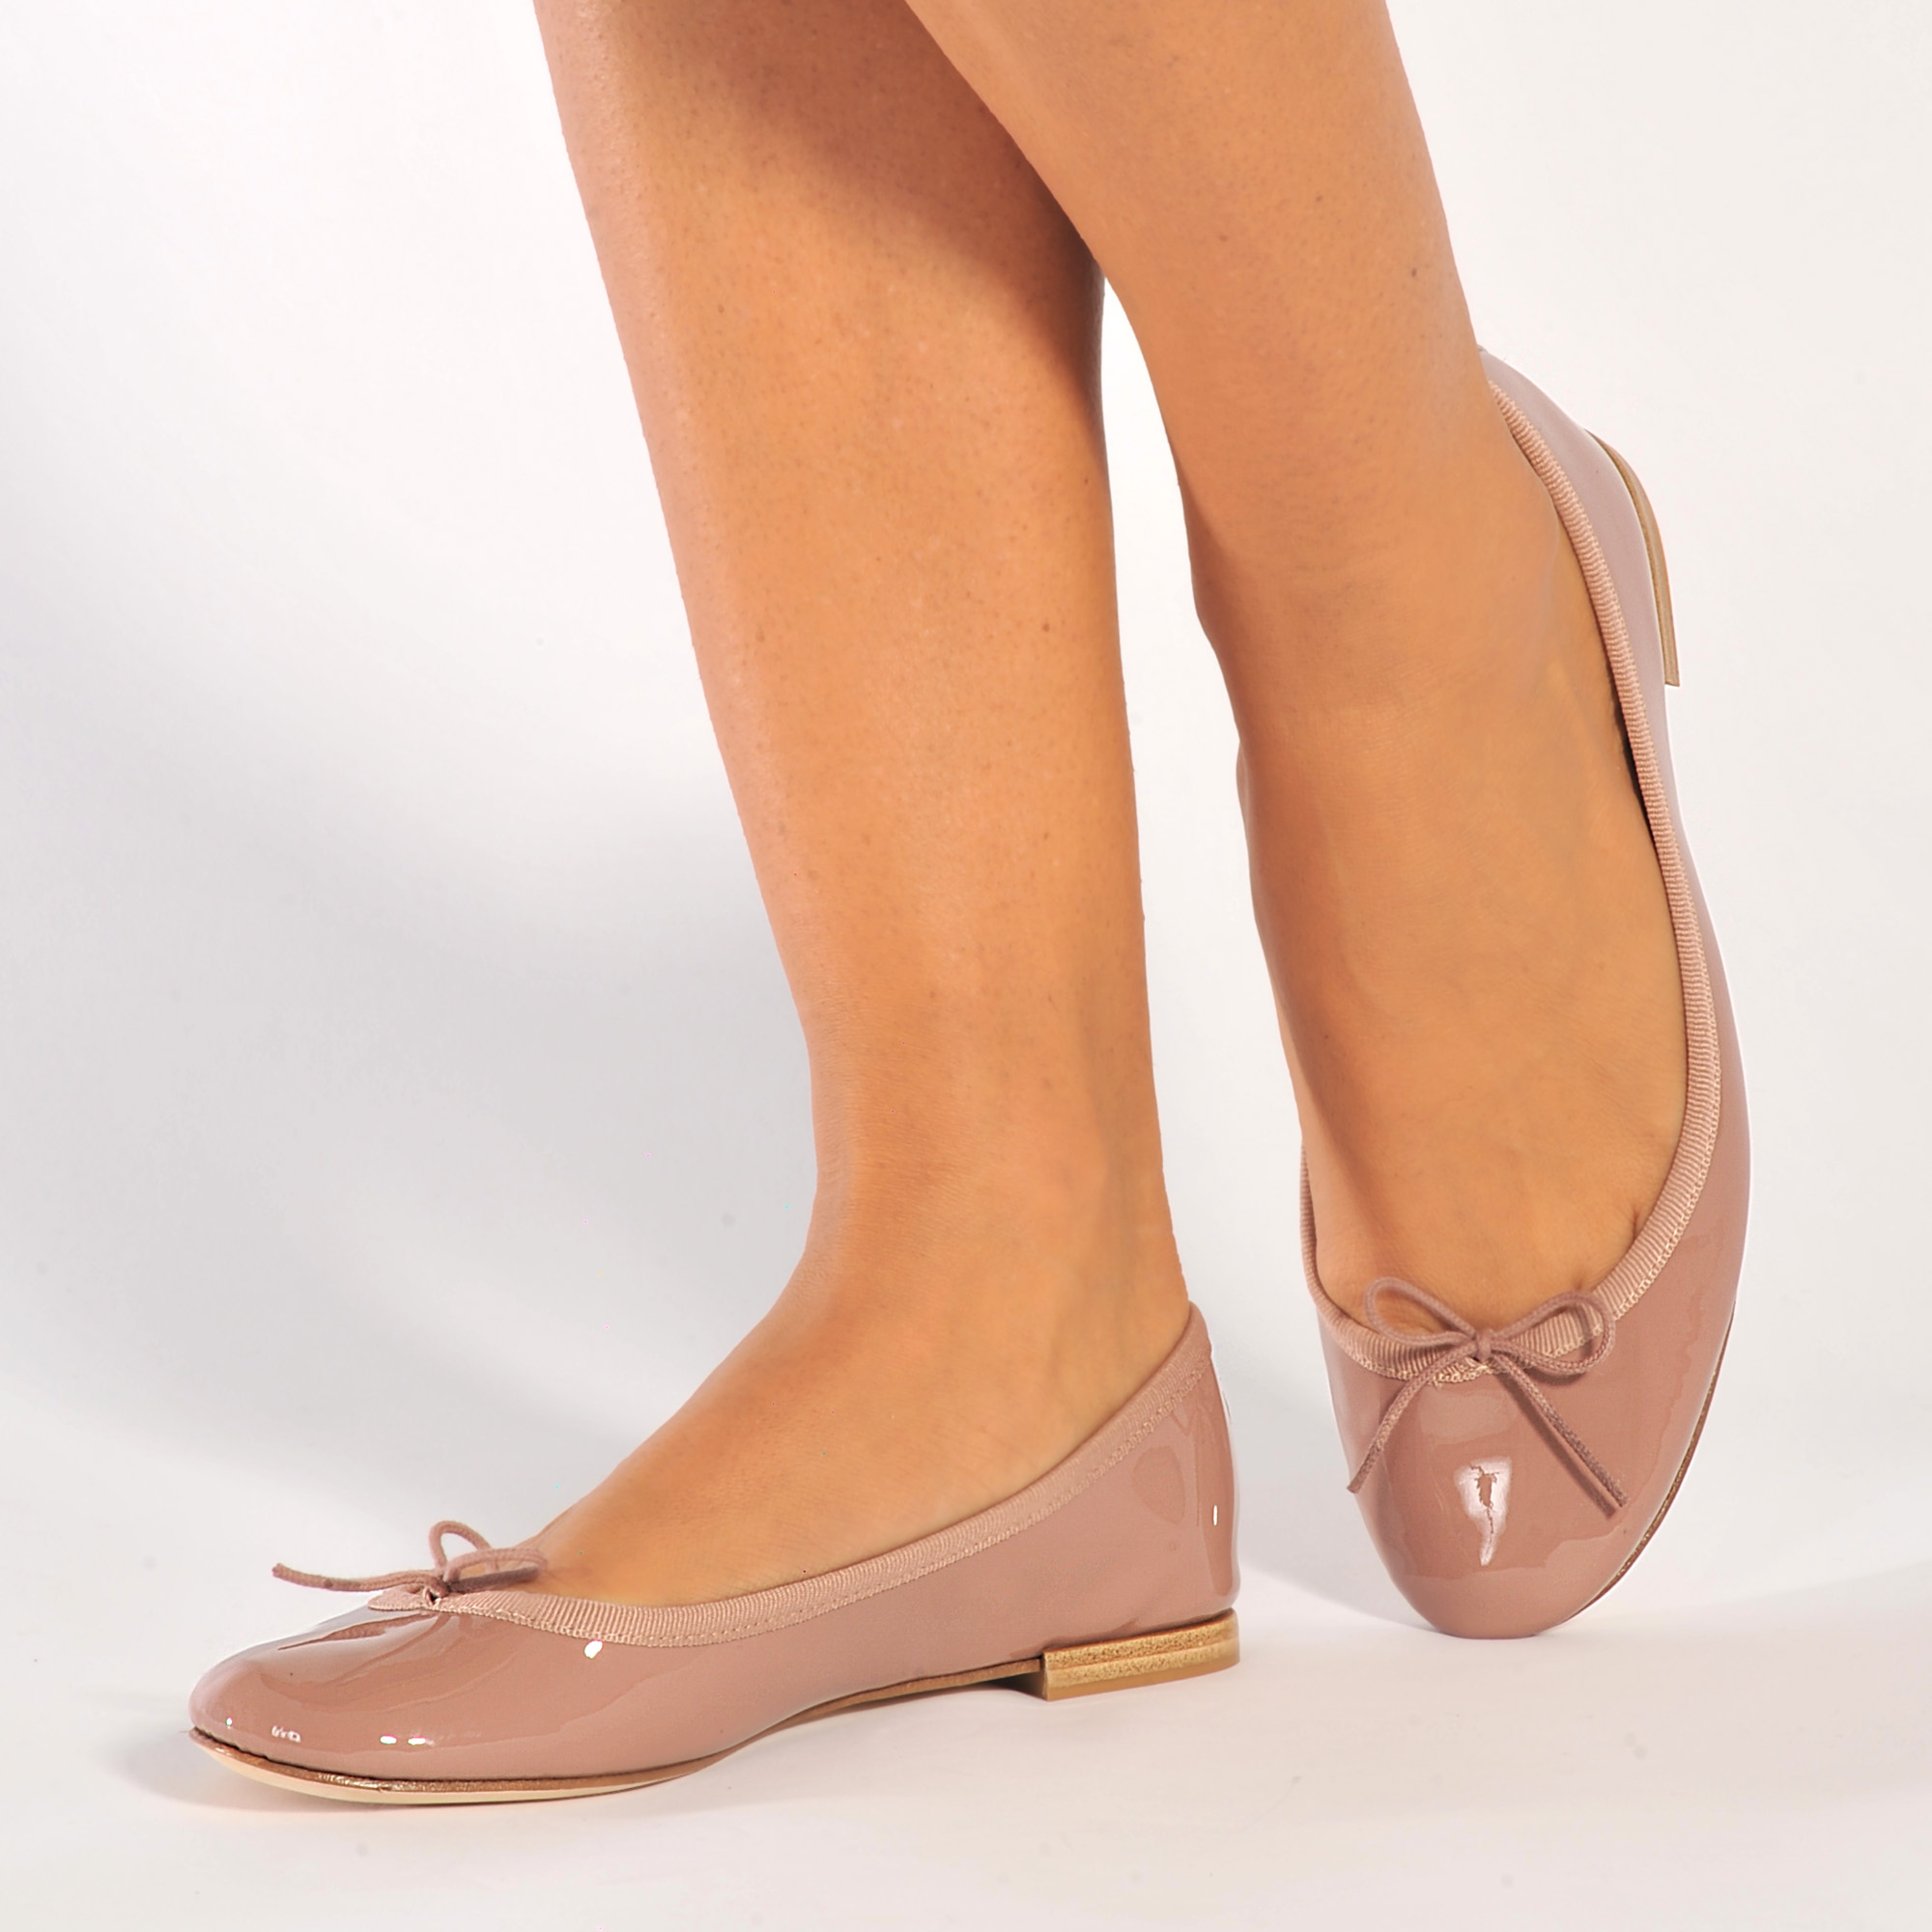 check-out e37b0 16c08 Ballerines repetto blanches soldes - Chaussure ...